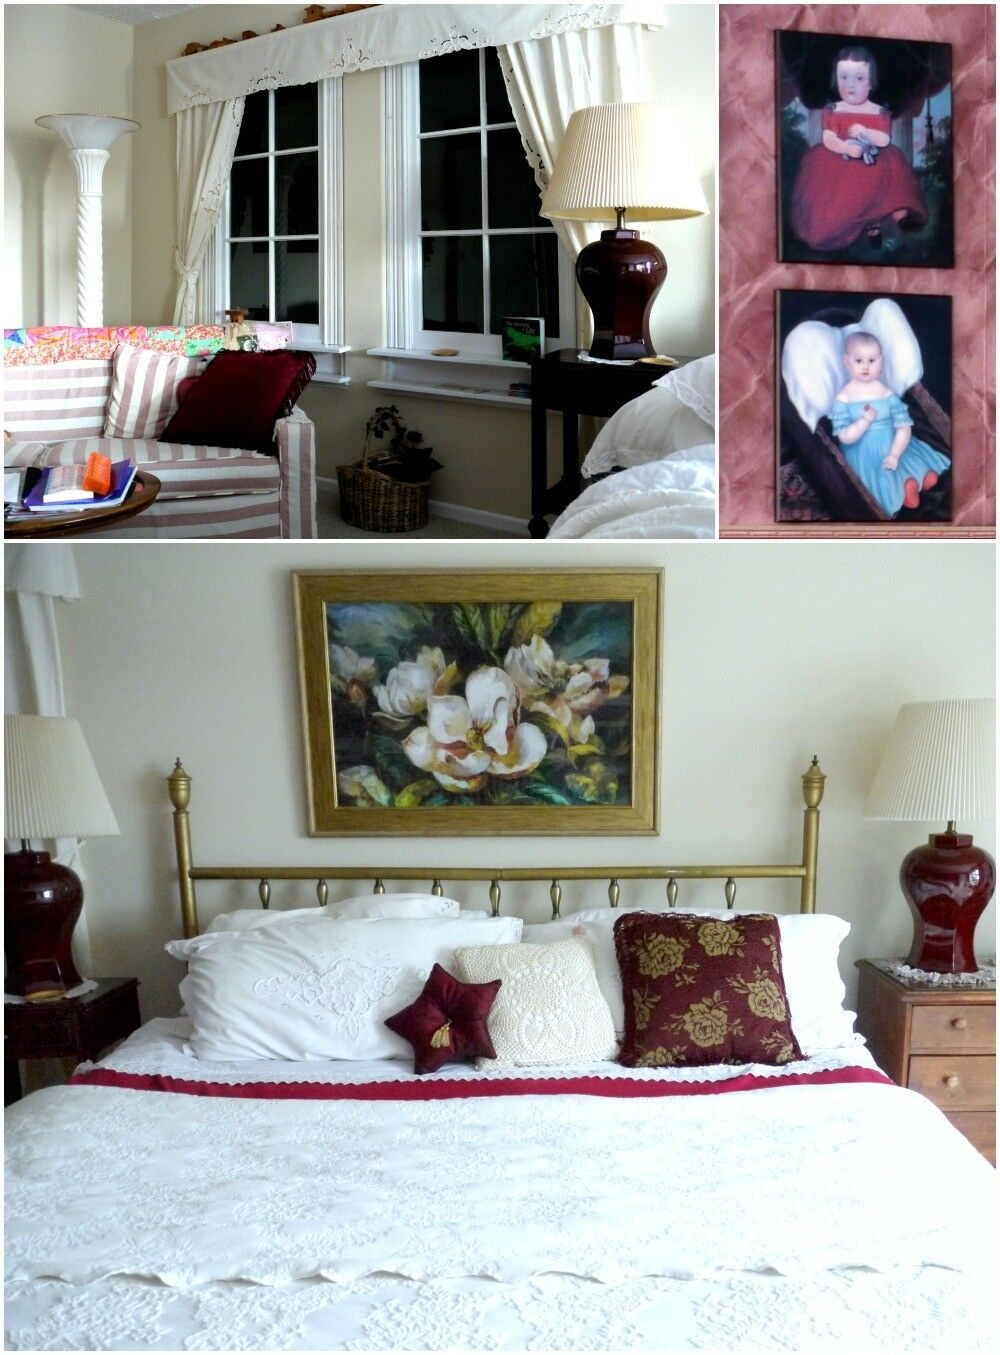 The Lakeside Room - The Lake House Bed & Breakfast, Lincoln City, Oregon | The Good Hearted Woman